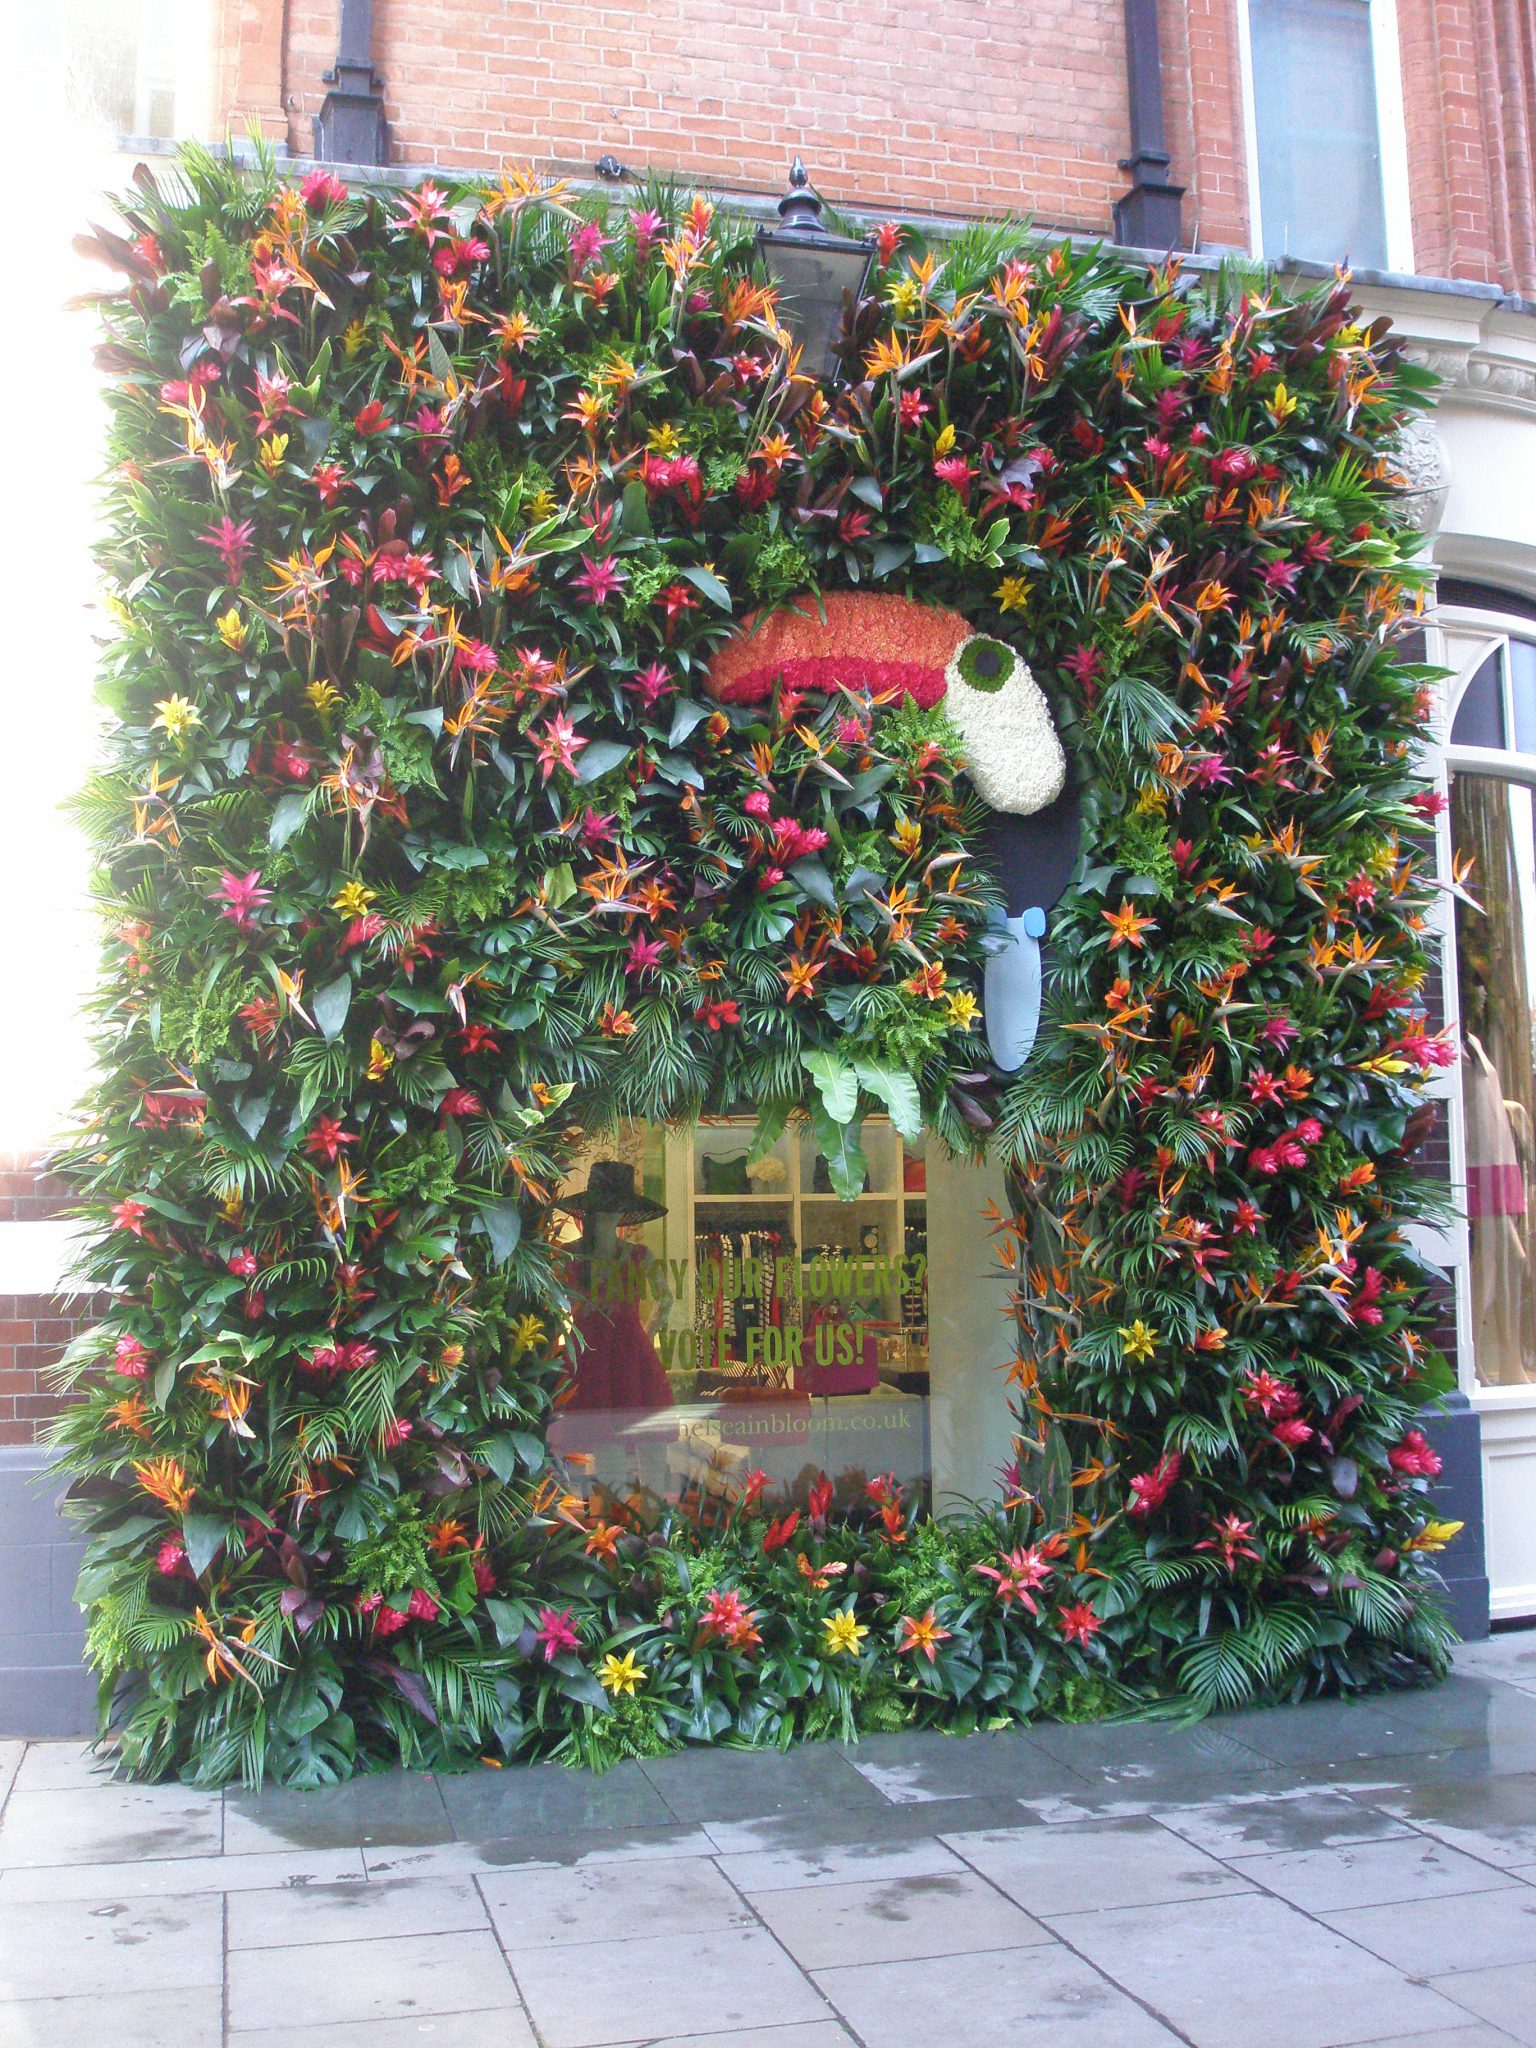 Now, back to year 2014. Here, a less-towering living wall, this one at Kate Spade on Pavilion Road, which is directly opposite the Green Wall. The Royal Horticultural Society awarded the 2014 Chelsea In Bloom GOLD to this exuberant and exotic display.